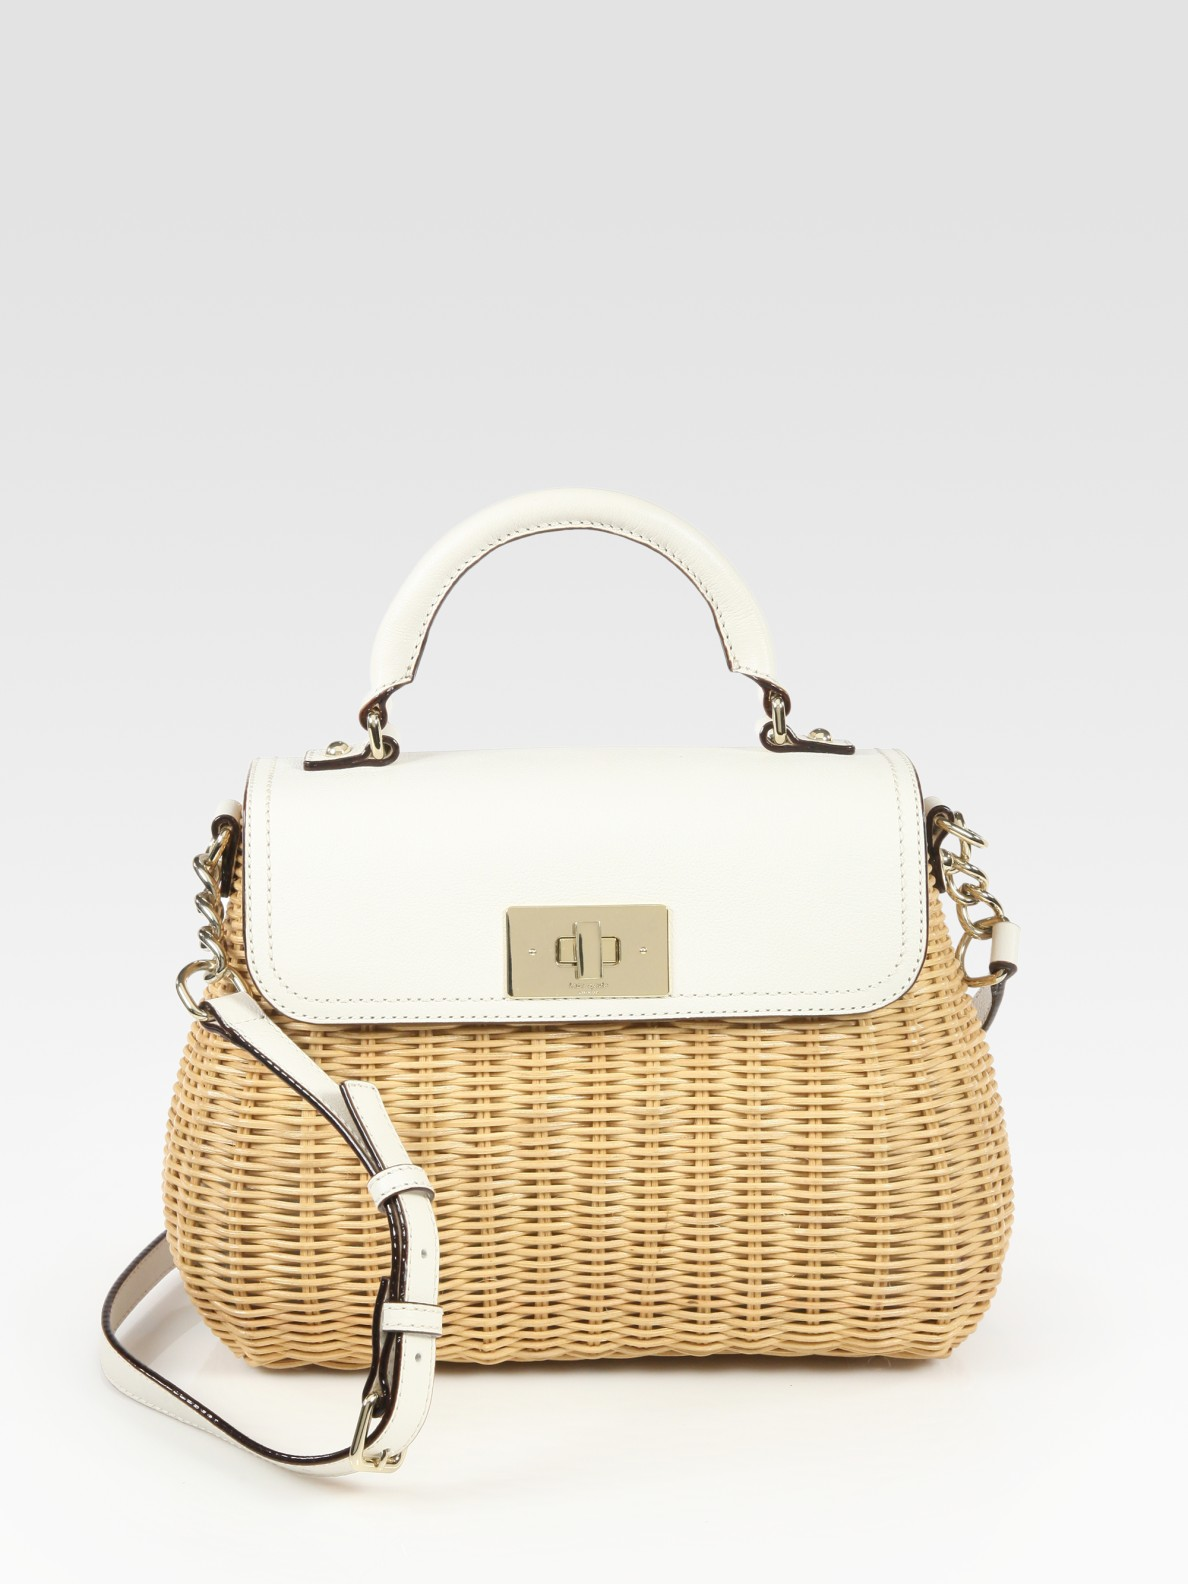 Shop designer mini bags & small purses on the official Michael Kors site. Receive complimentary shipping & returns on your order.